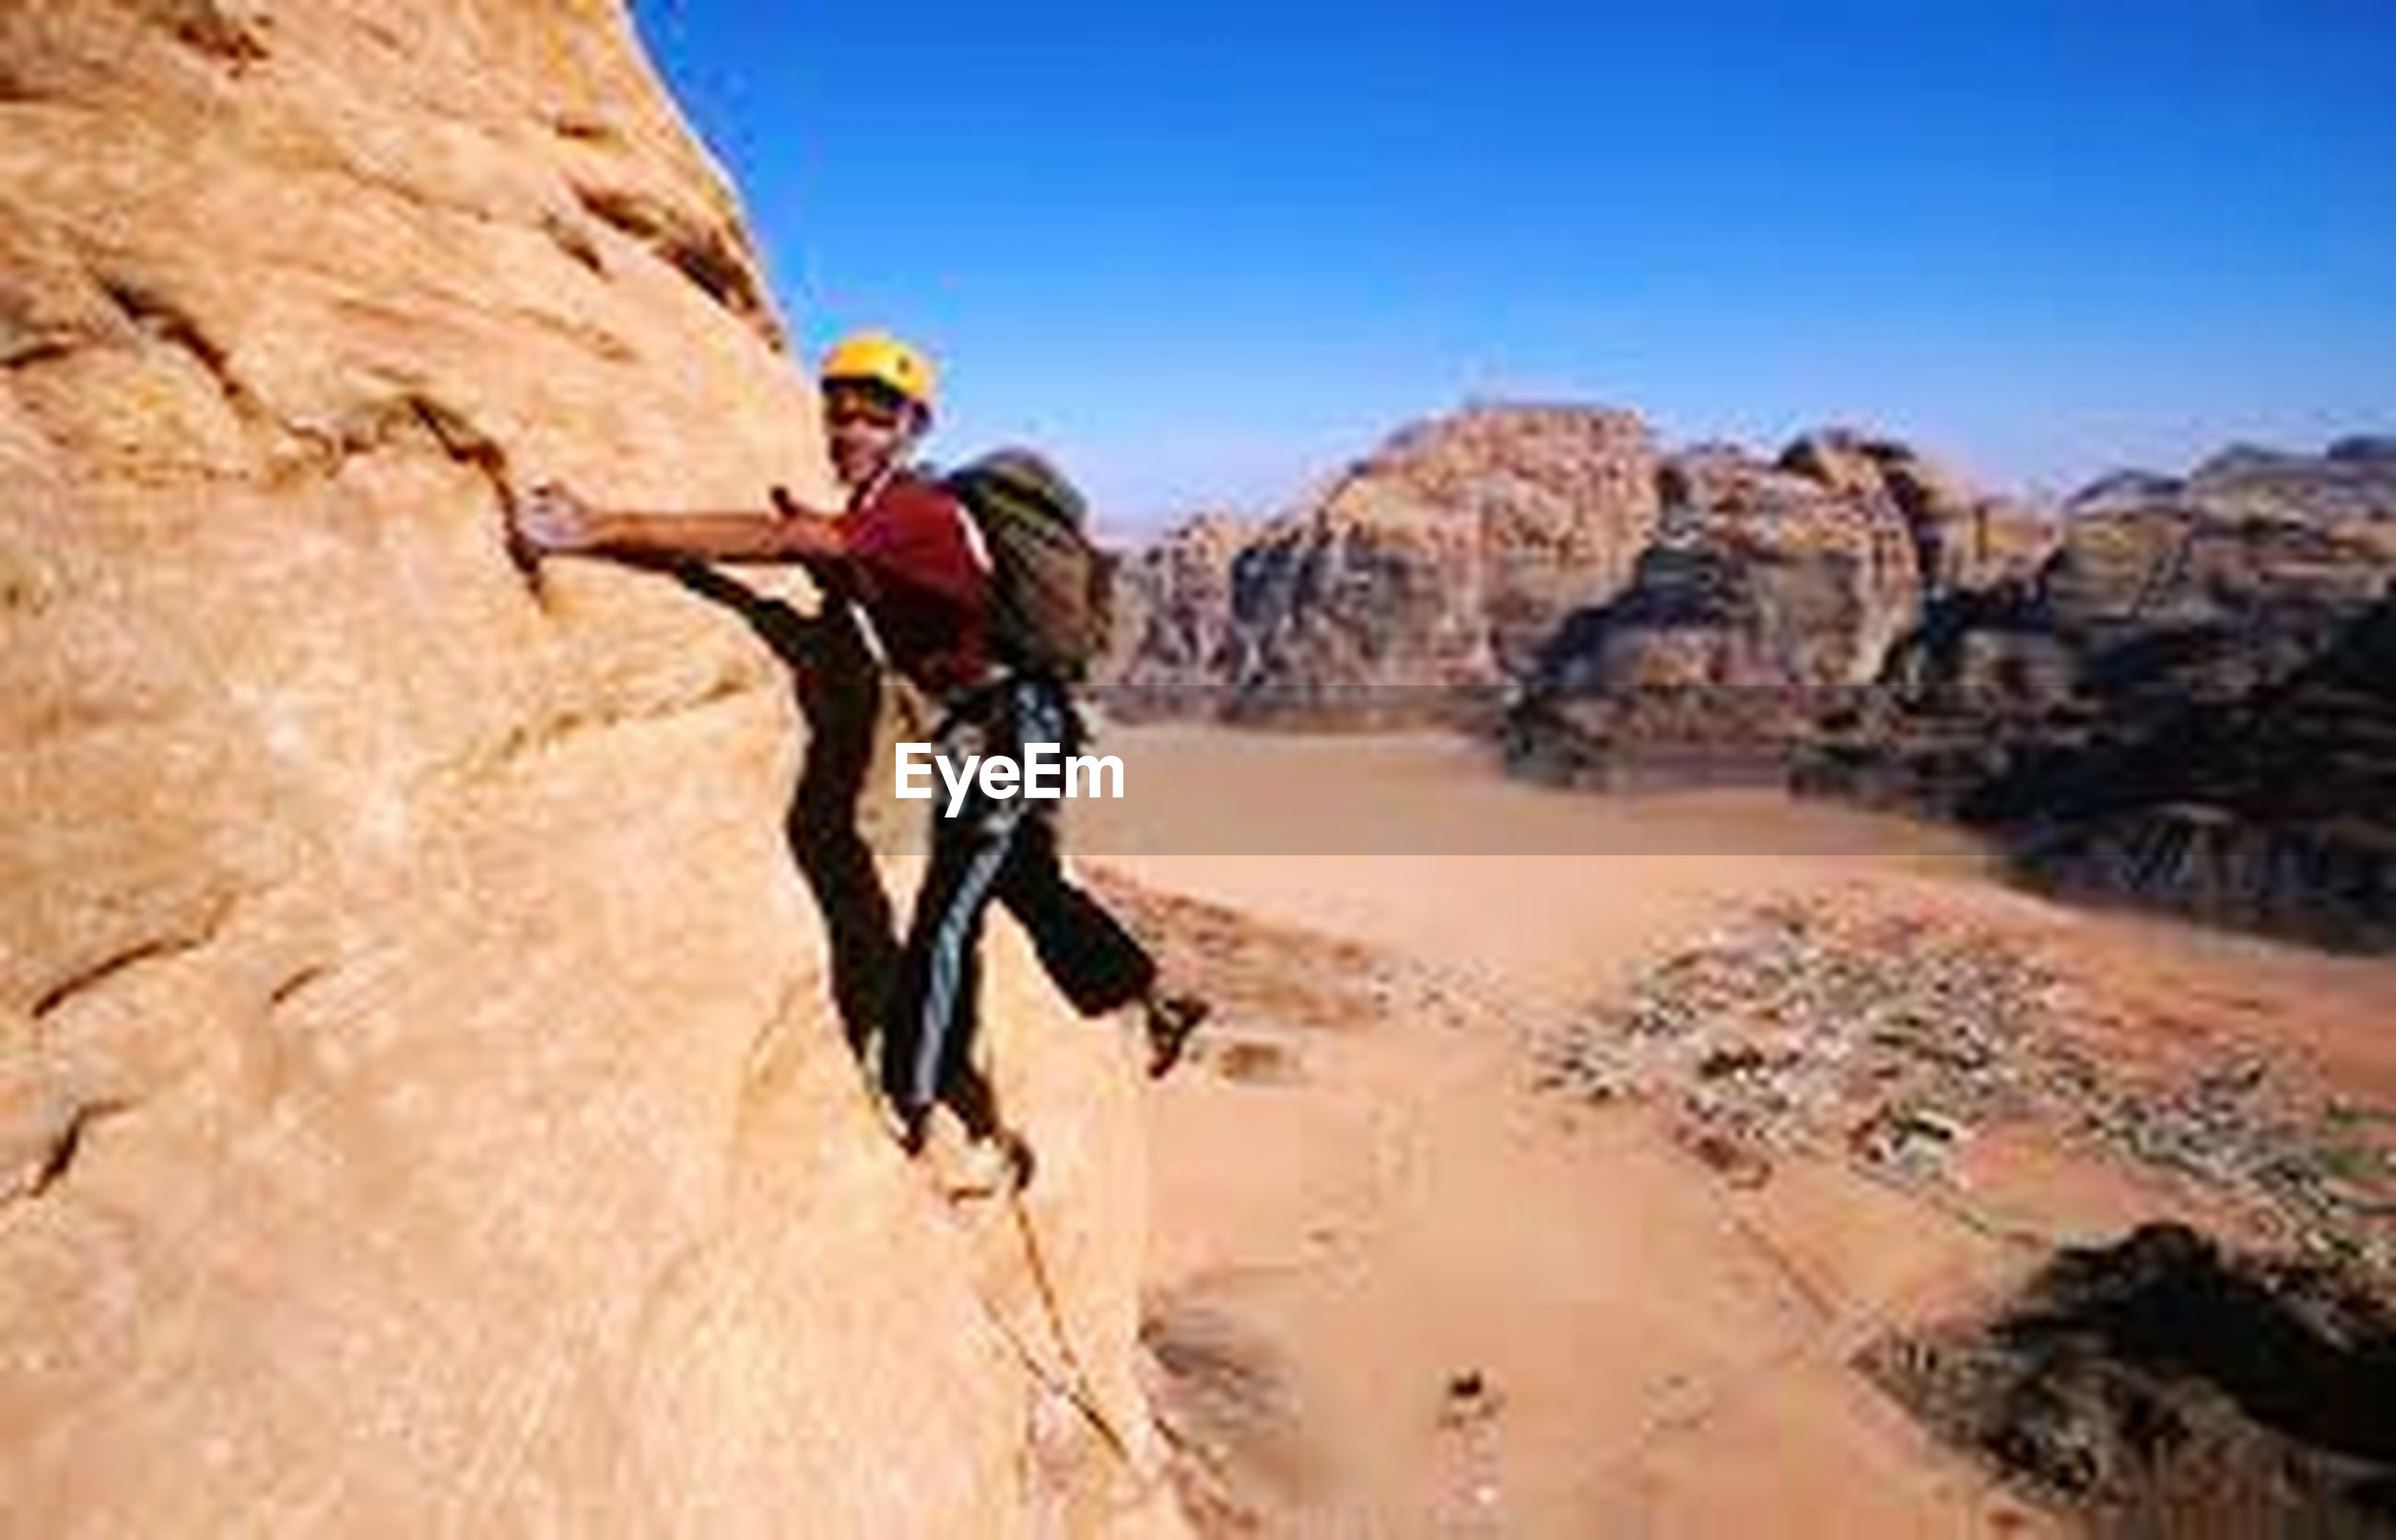 rock - object, adventure, extreme sports, adults only, rock climbing, one person, adult, sport, healthy lifestyle, skill, only women, helmet, vitality, one woman only, outdoors, cliff, challenge, sports clothing, sports helmet, headwear, people, climbing, nature, day, sky